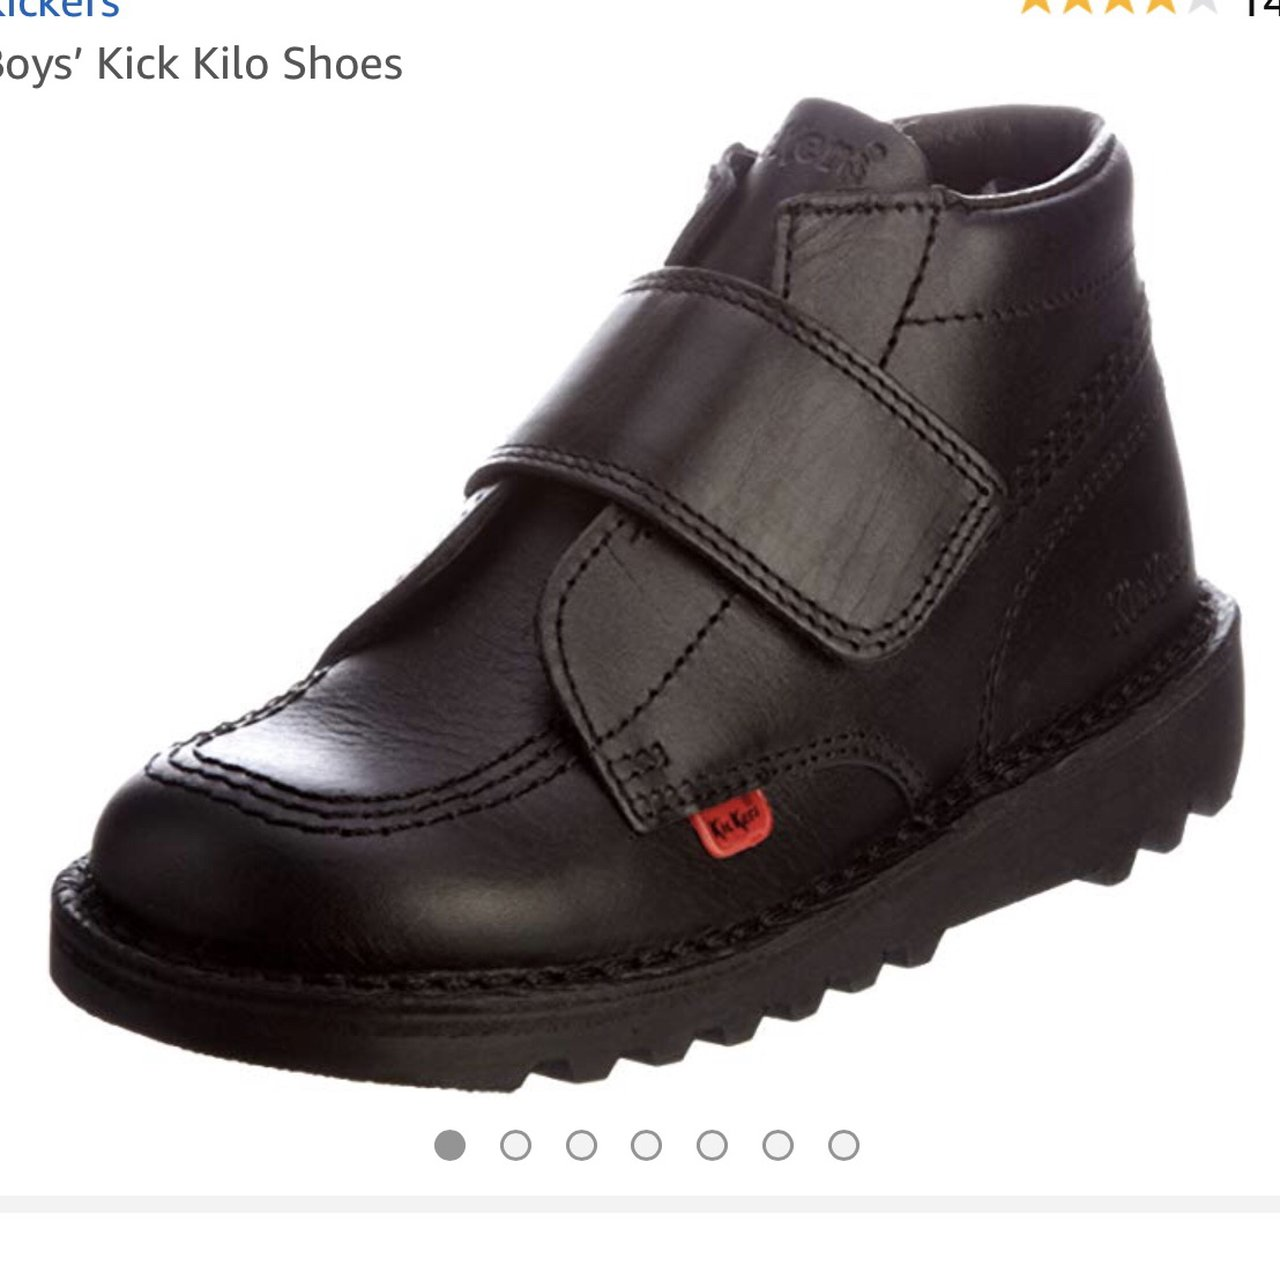 Kicker boots Infant size 7 Never worn